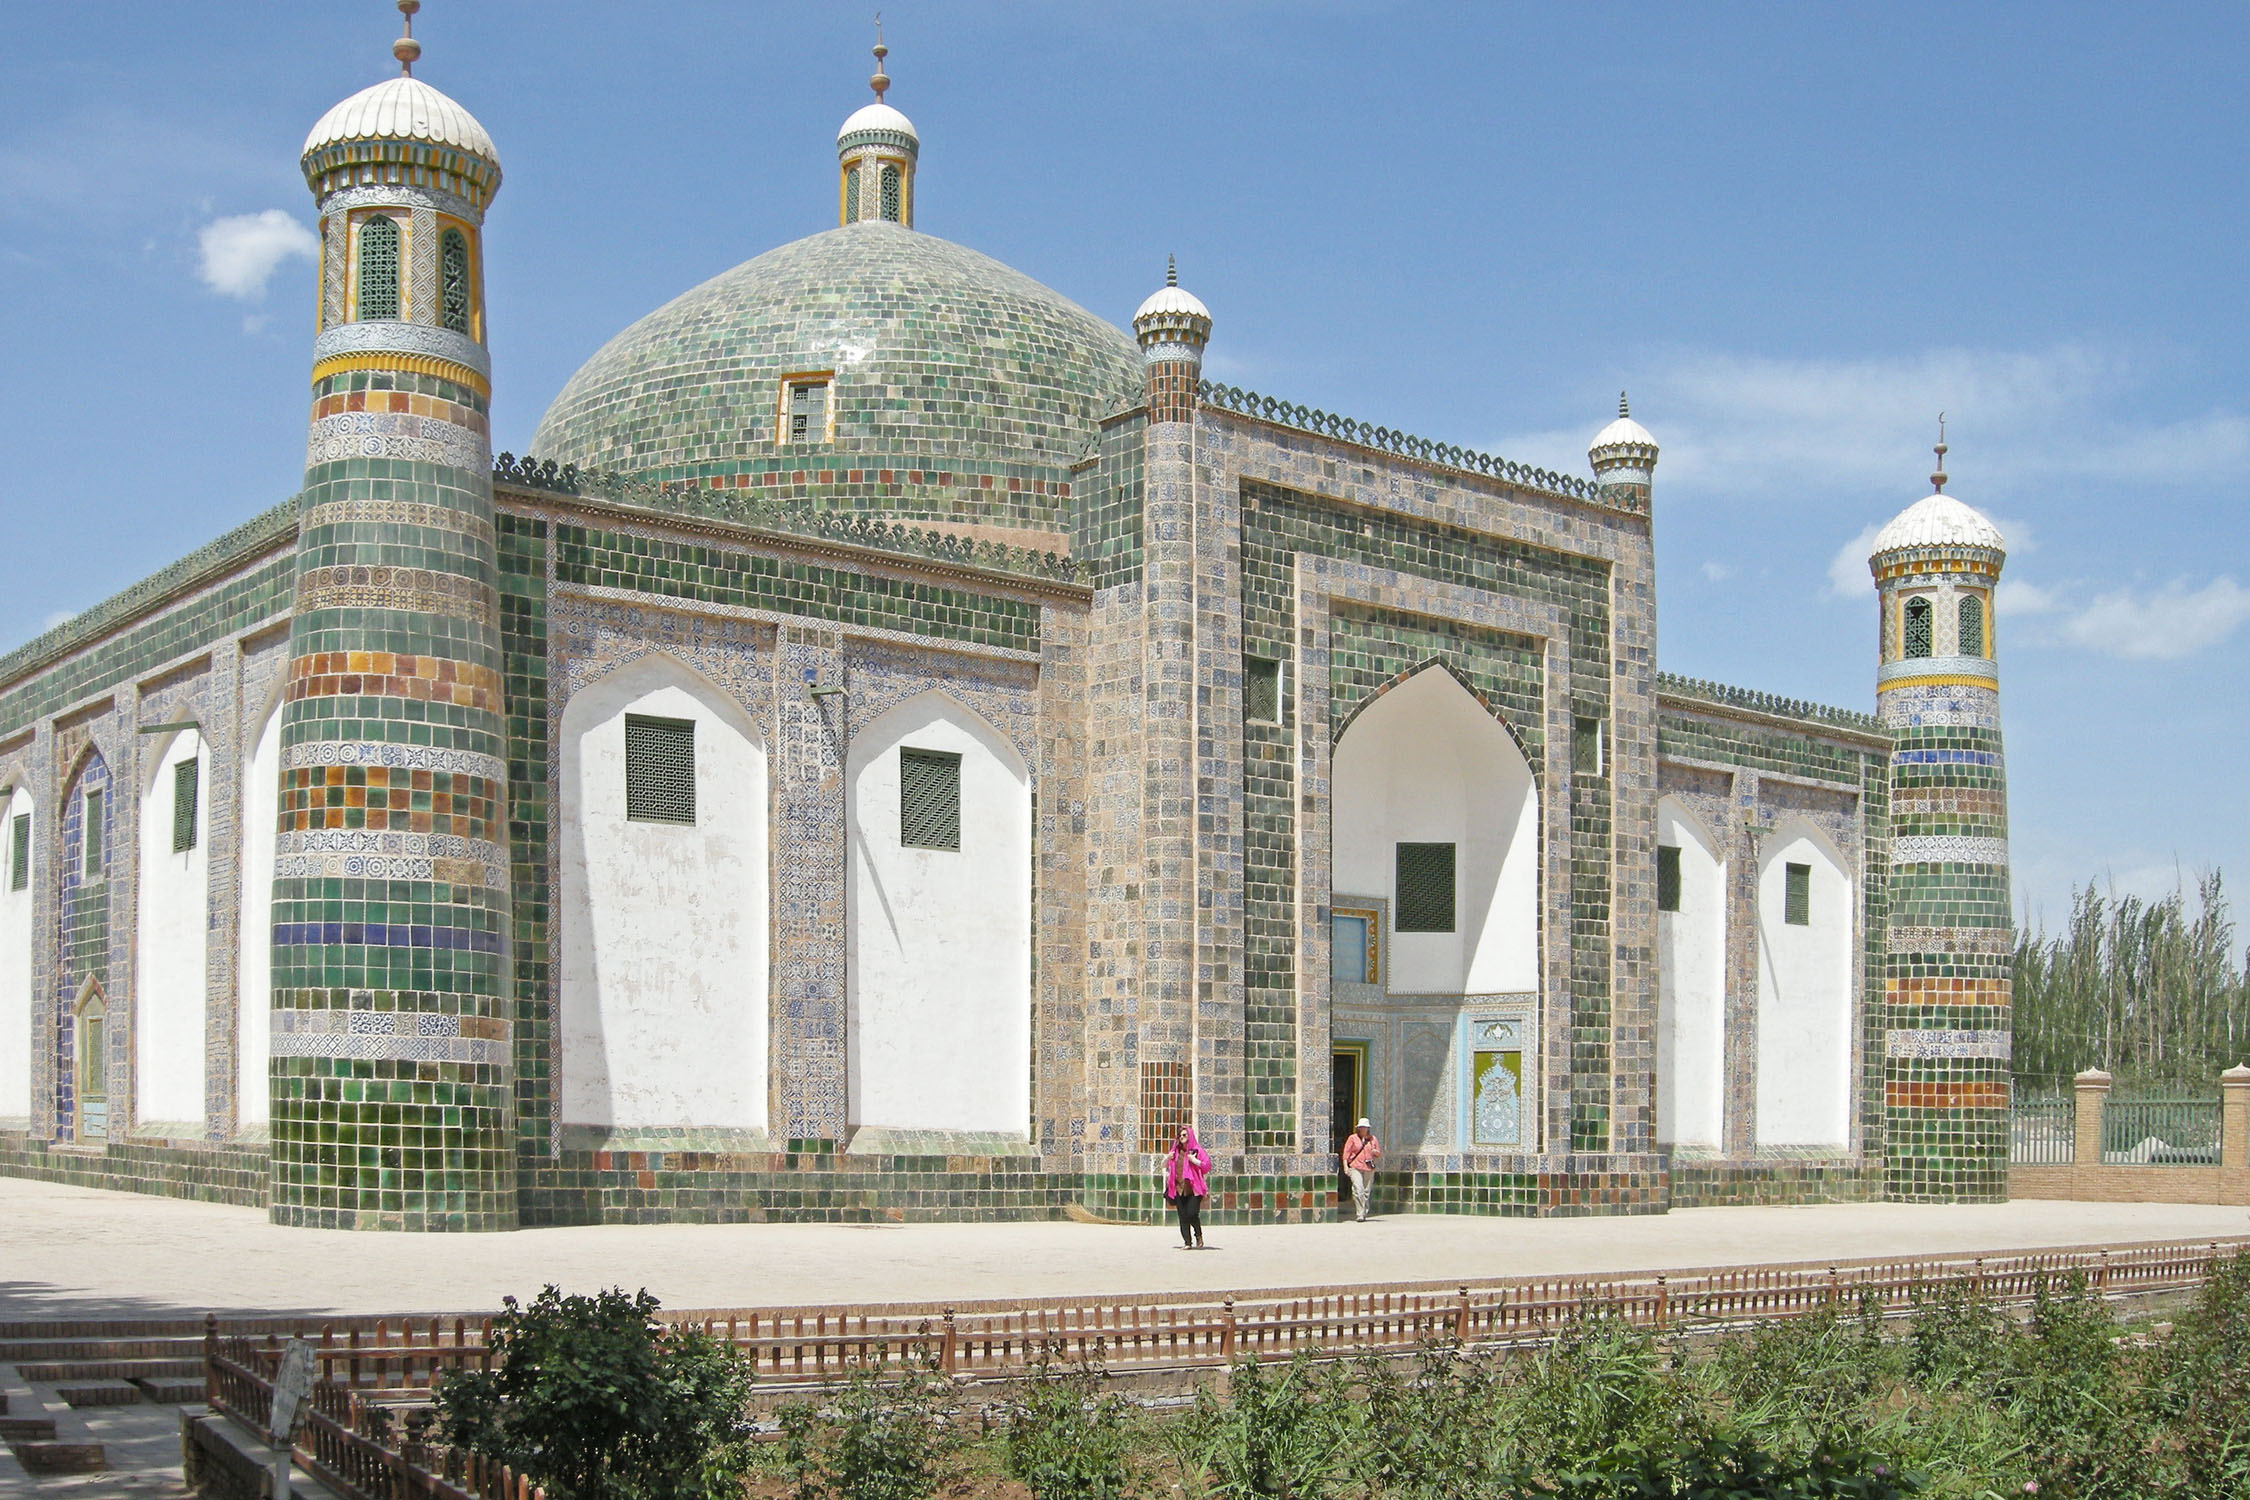 Xinjiang, china landscape(afaq khoja mausoleum, April '16, David Patten)004.jpg